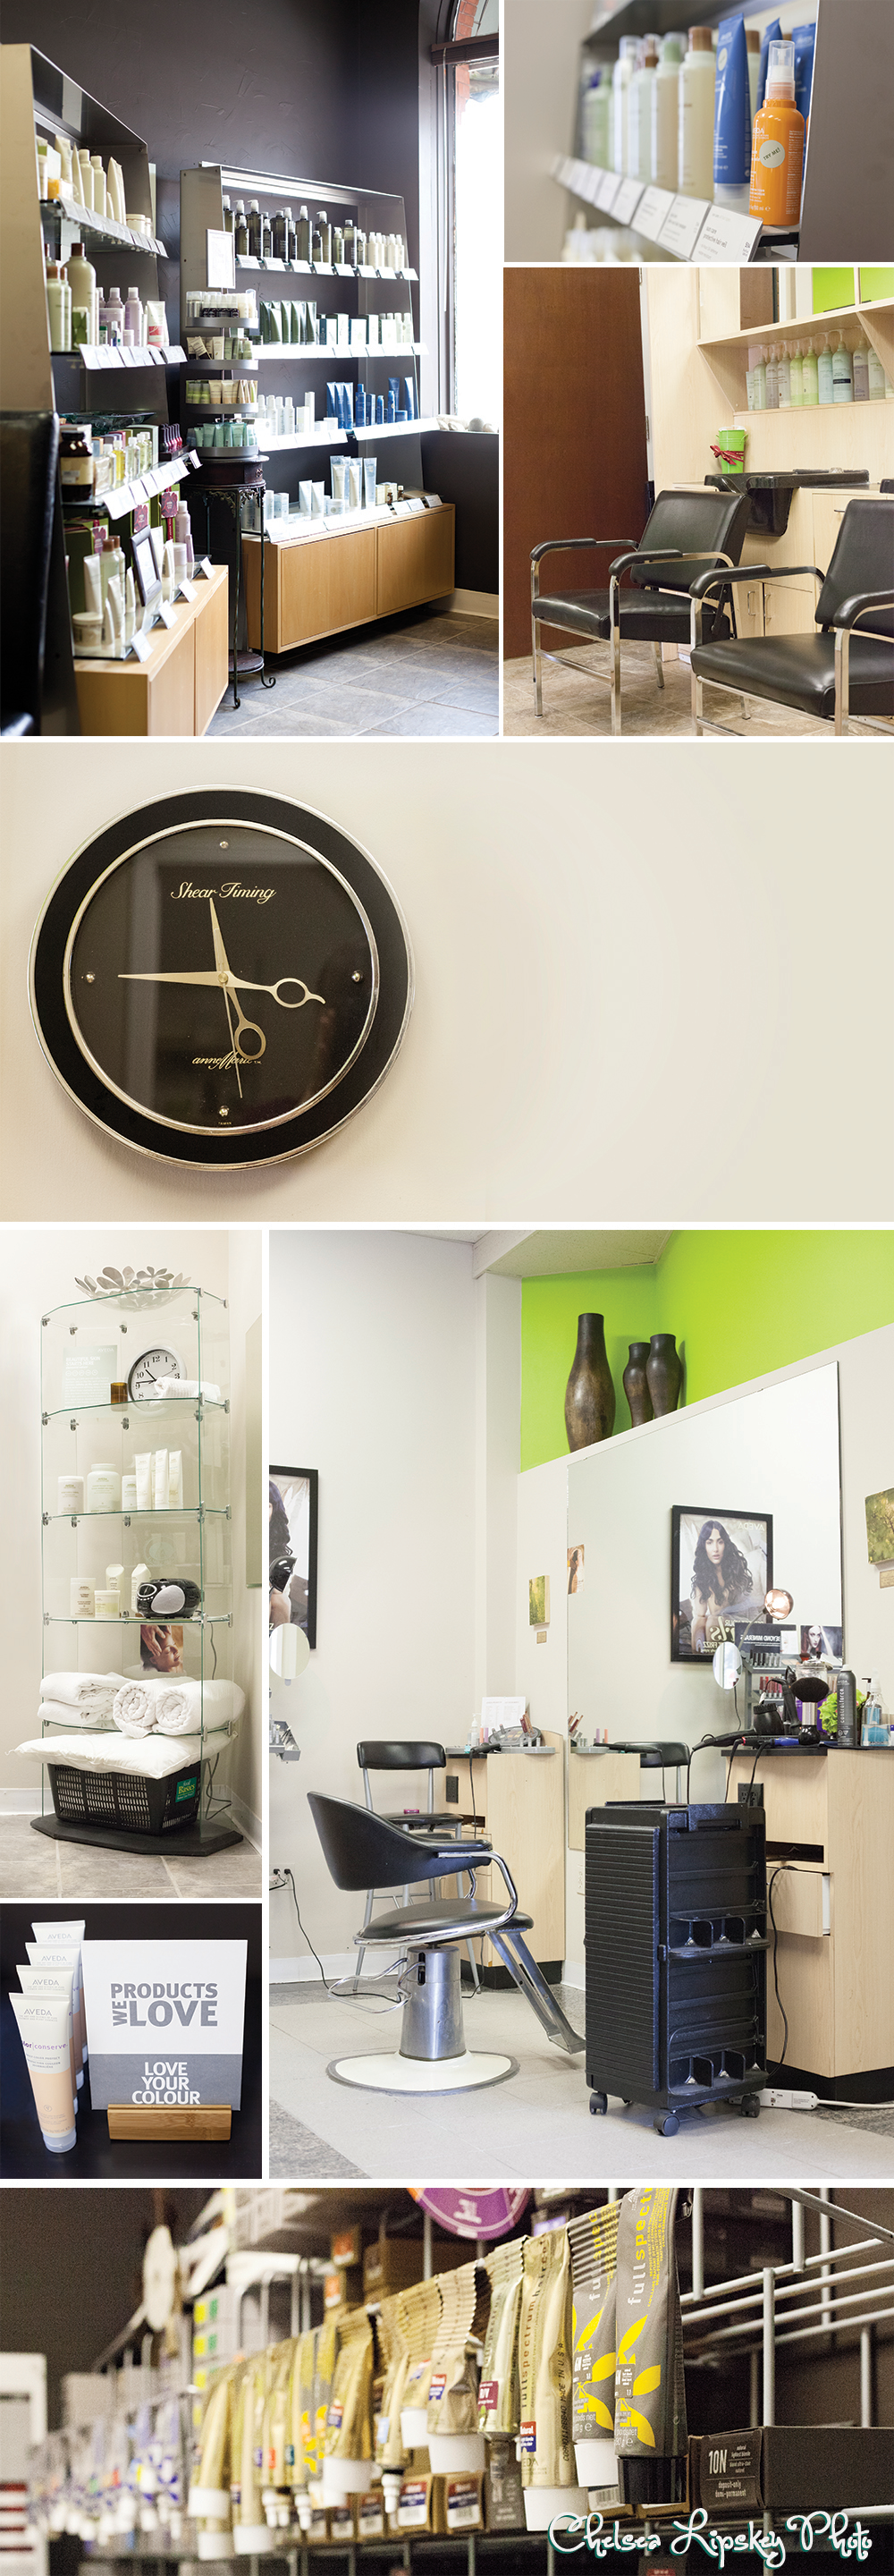 salon sixty one spa